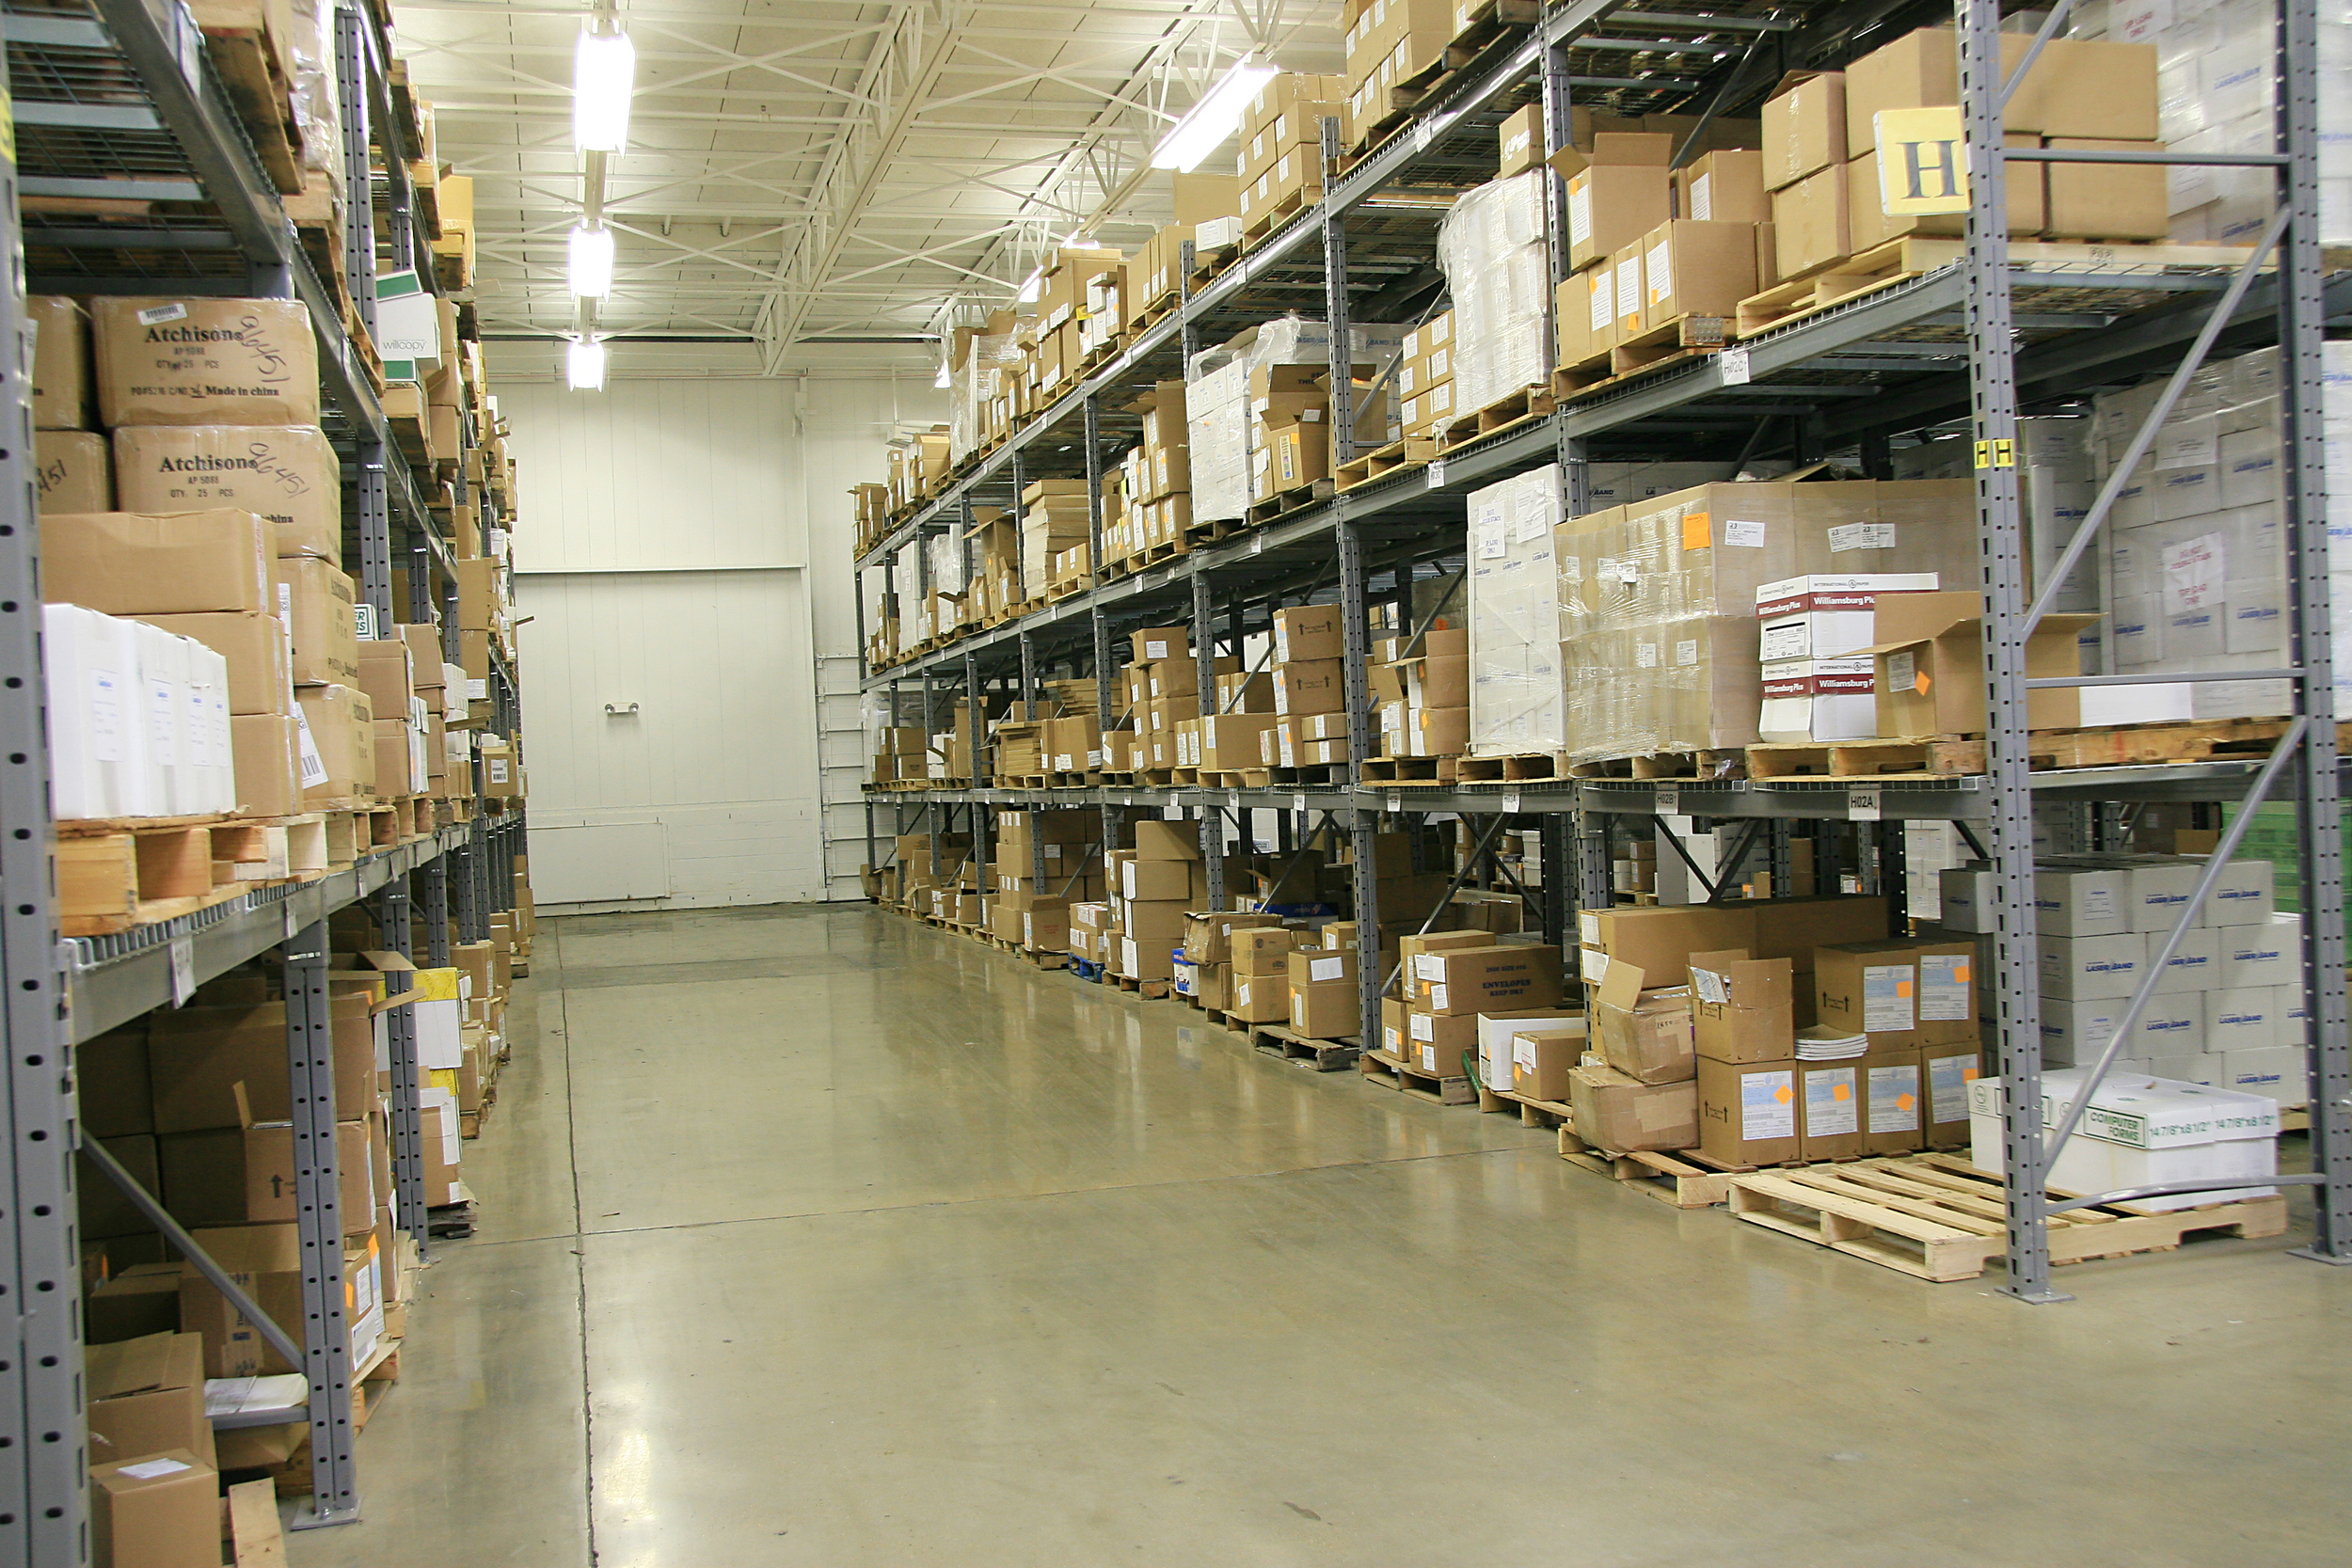 warehouse isle with products